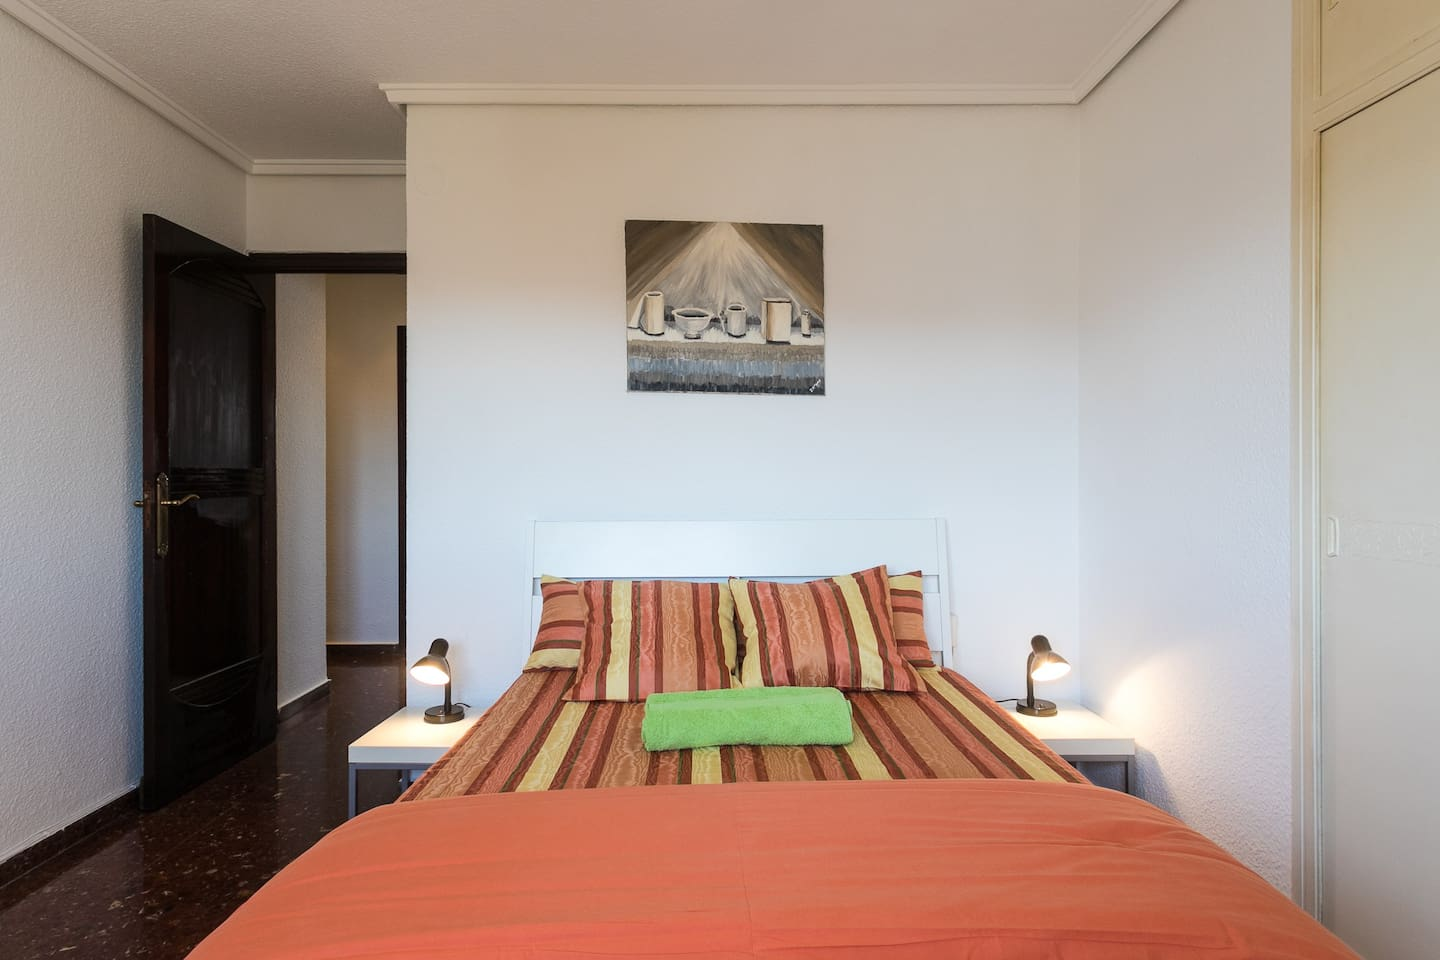 Bed room with 140 meter bed